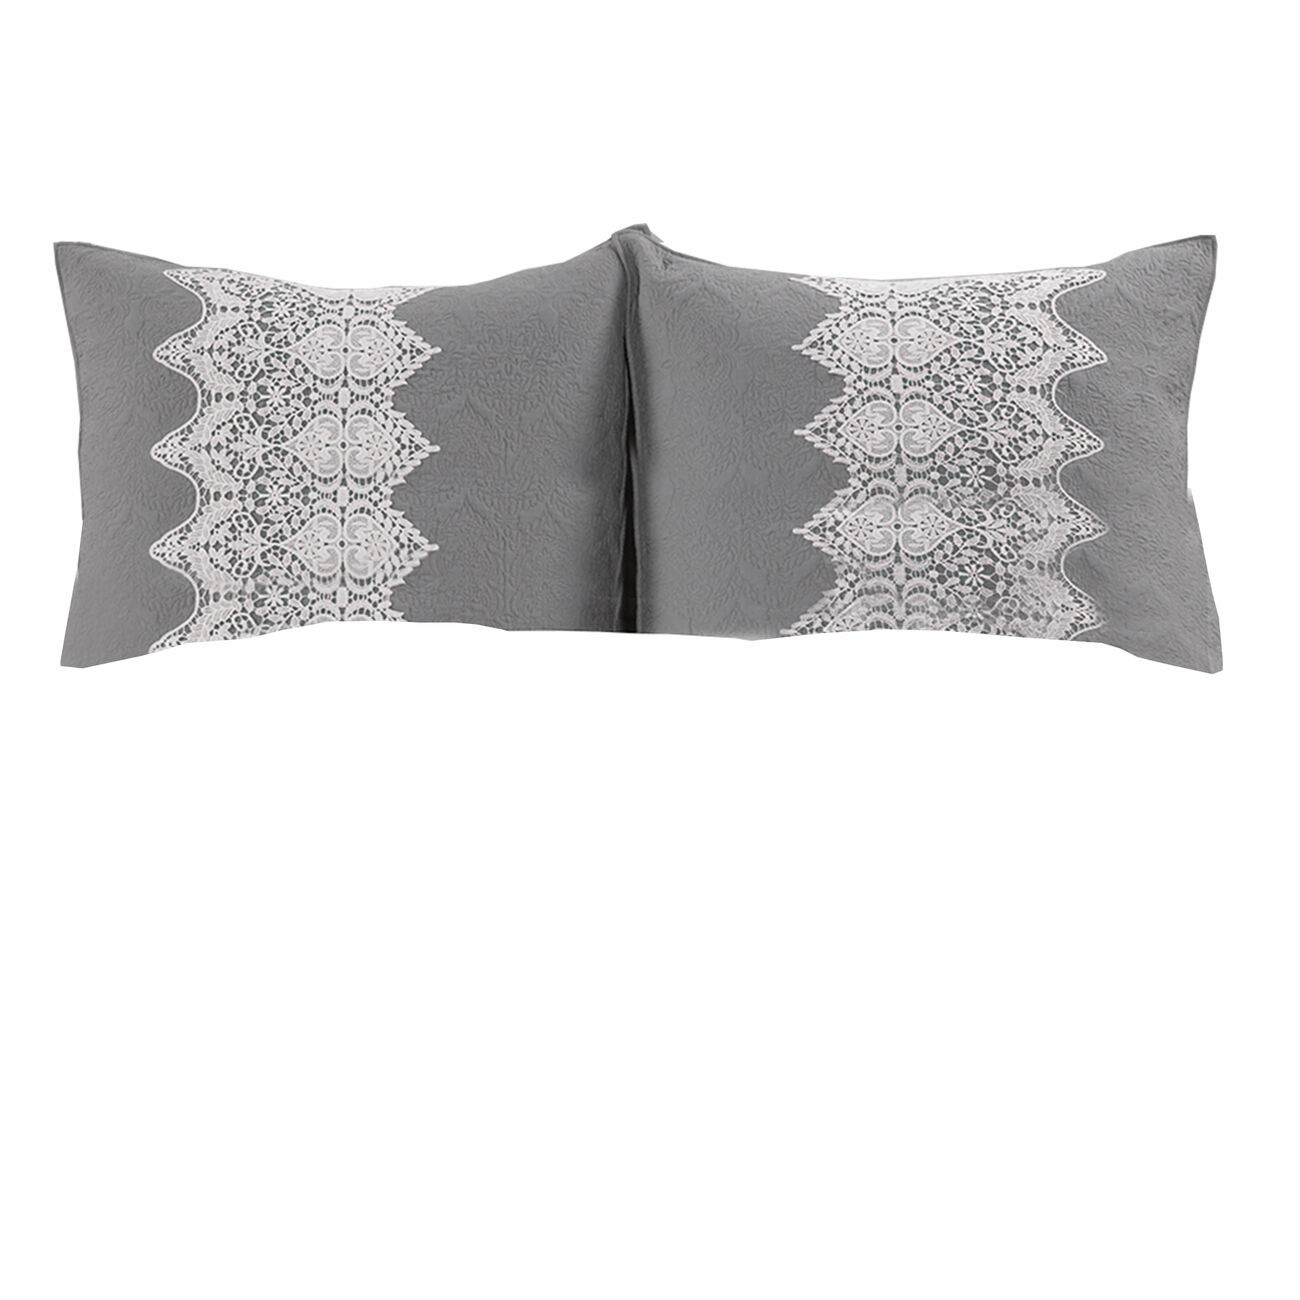 2 Piece Twin Size Quilt Set with Lace Embellishment, White and Gray